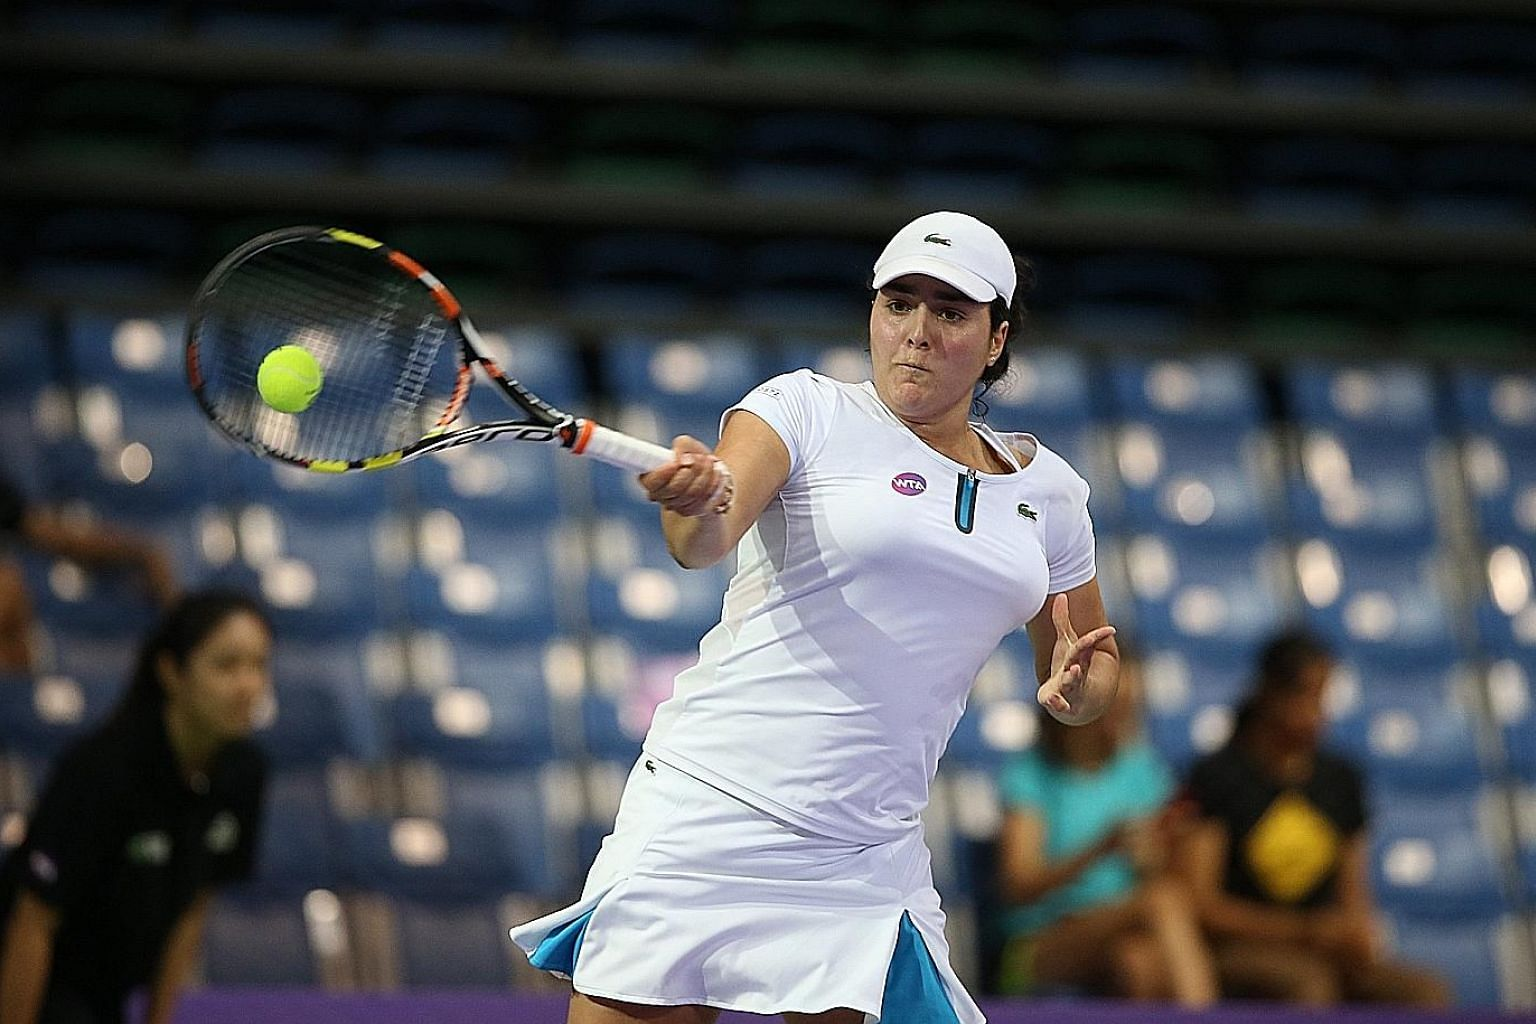 Ons Jabeur of Tunisia hitting a forehand yesterday in her match against Japan's Naomi Osaka at the OCBC Arena. Jabeur, 21, won the match 2-4, 5-4, 4-1 for her first win of the WTA Rising Stars Invitational tournament. France's Caroline Garcia made it